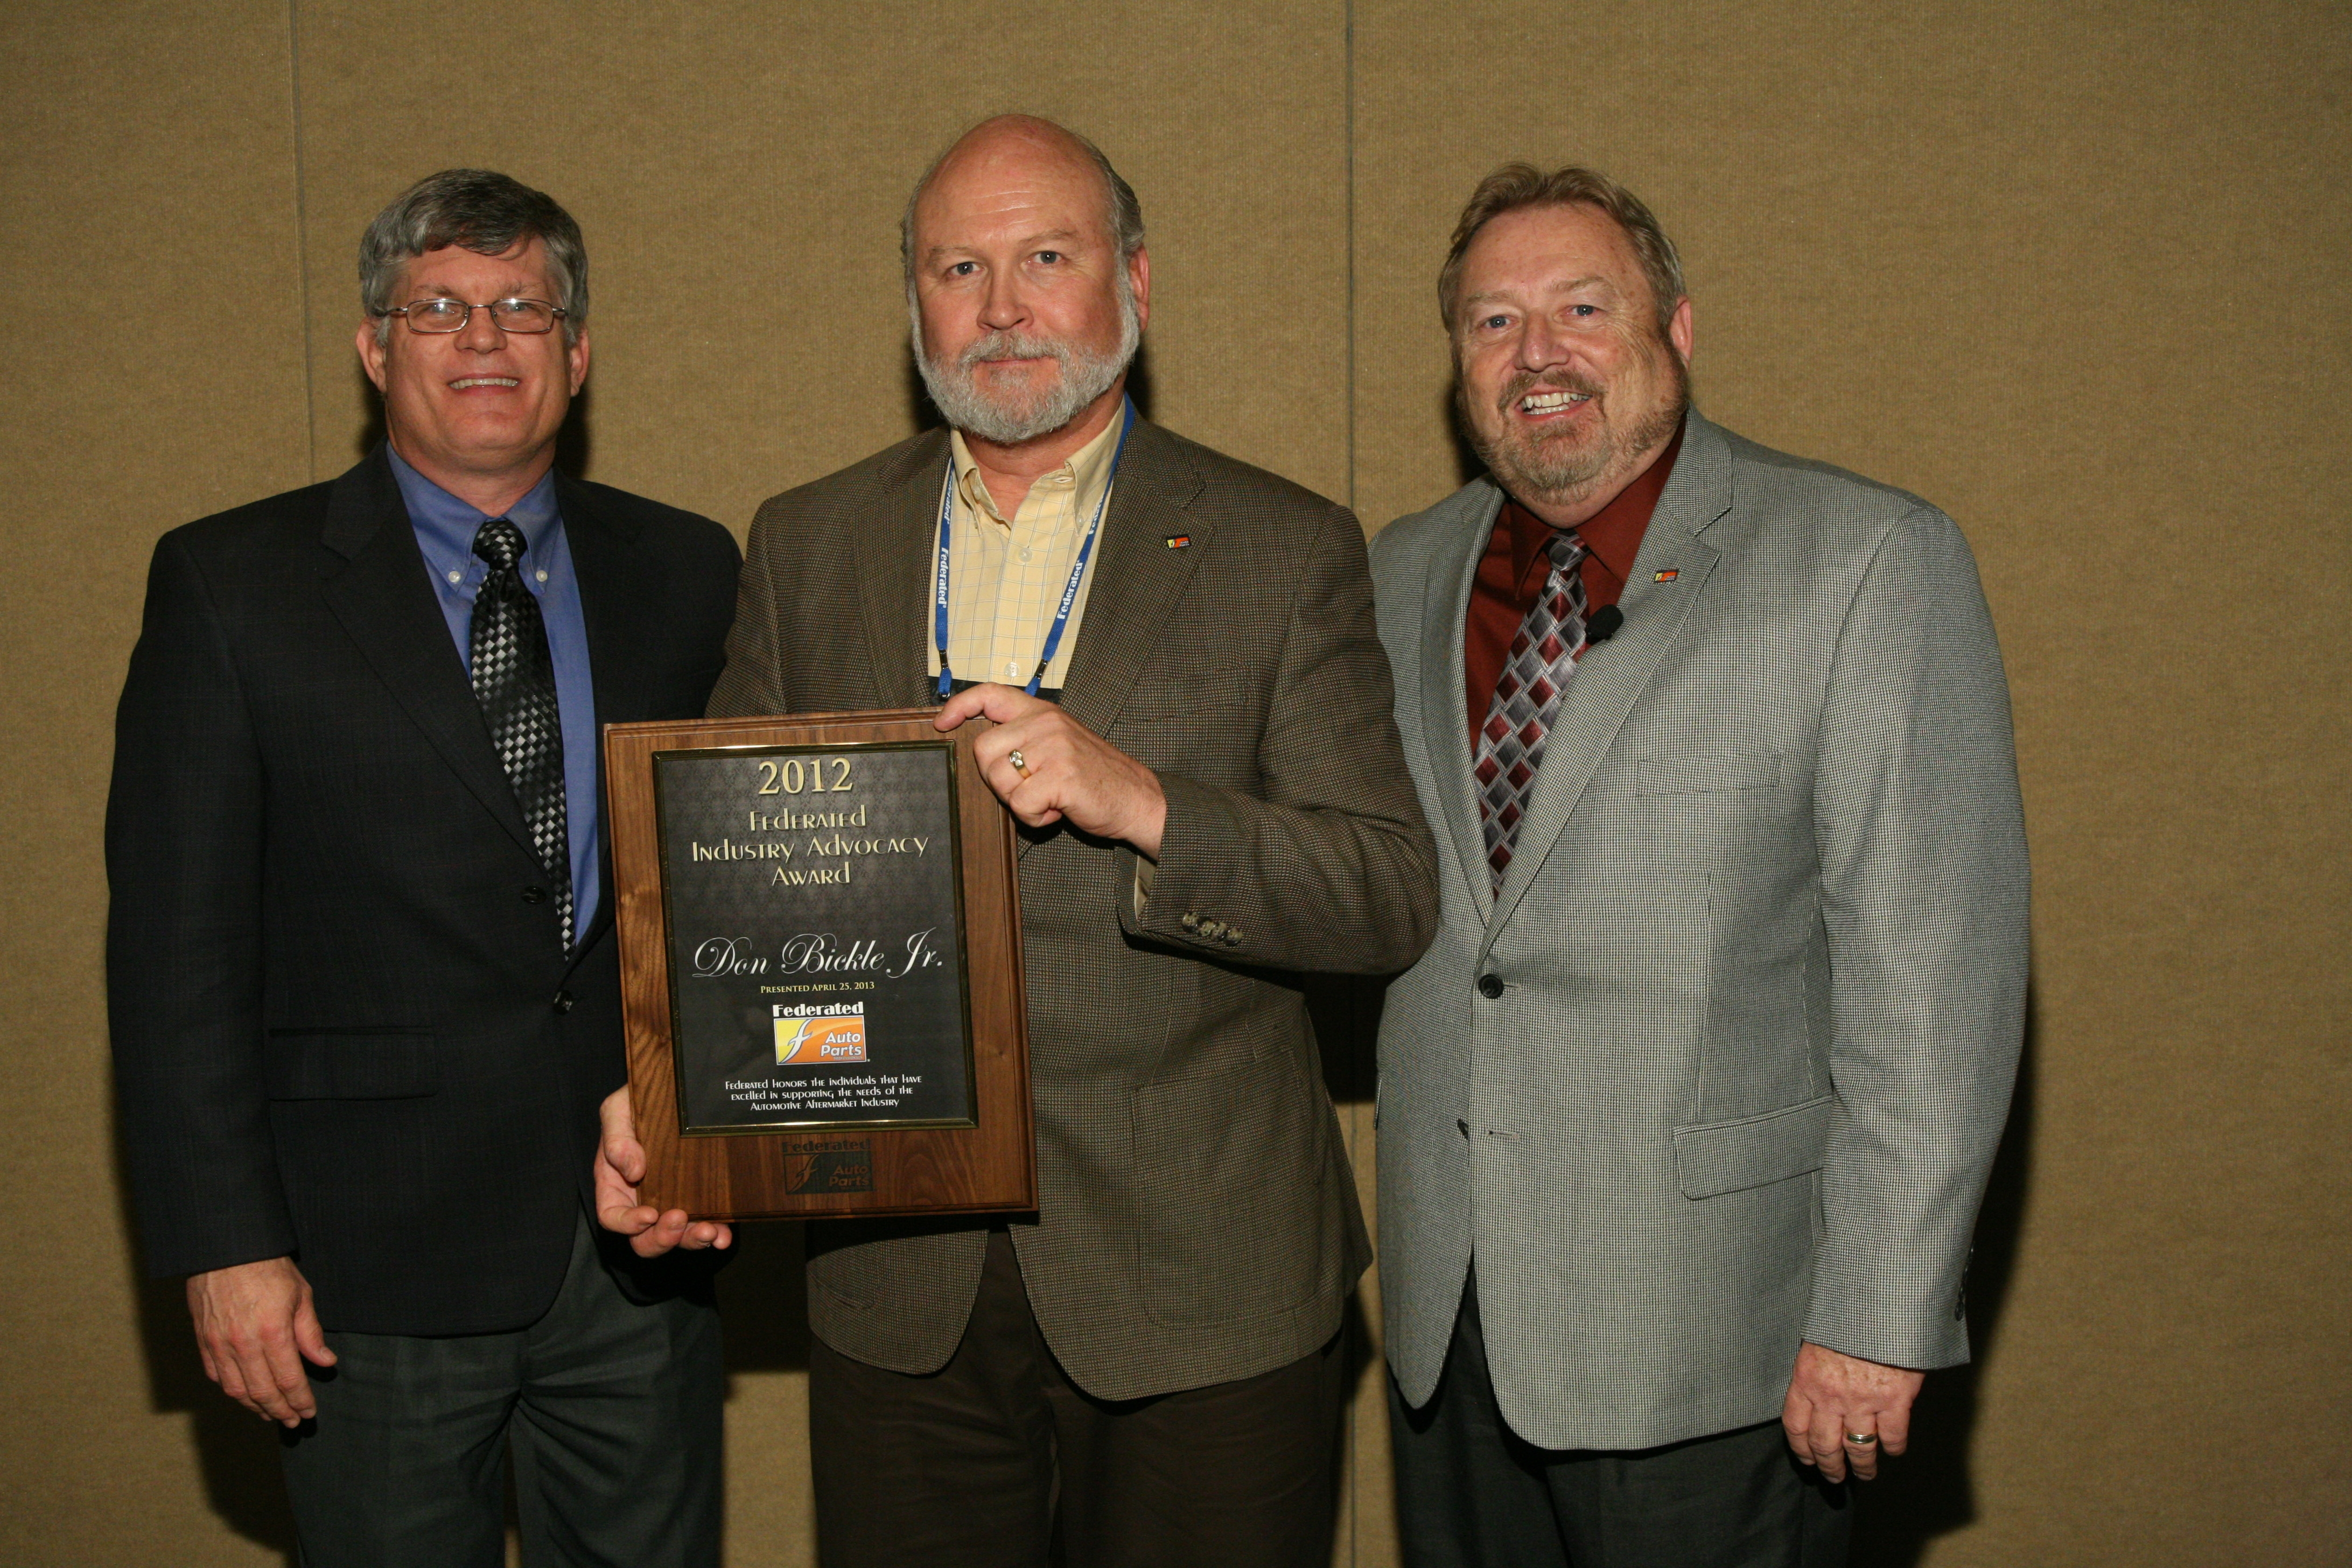 Federated honors member Don Bickle Jr. with Industry Advocacy Award